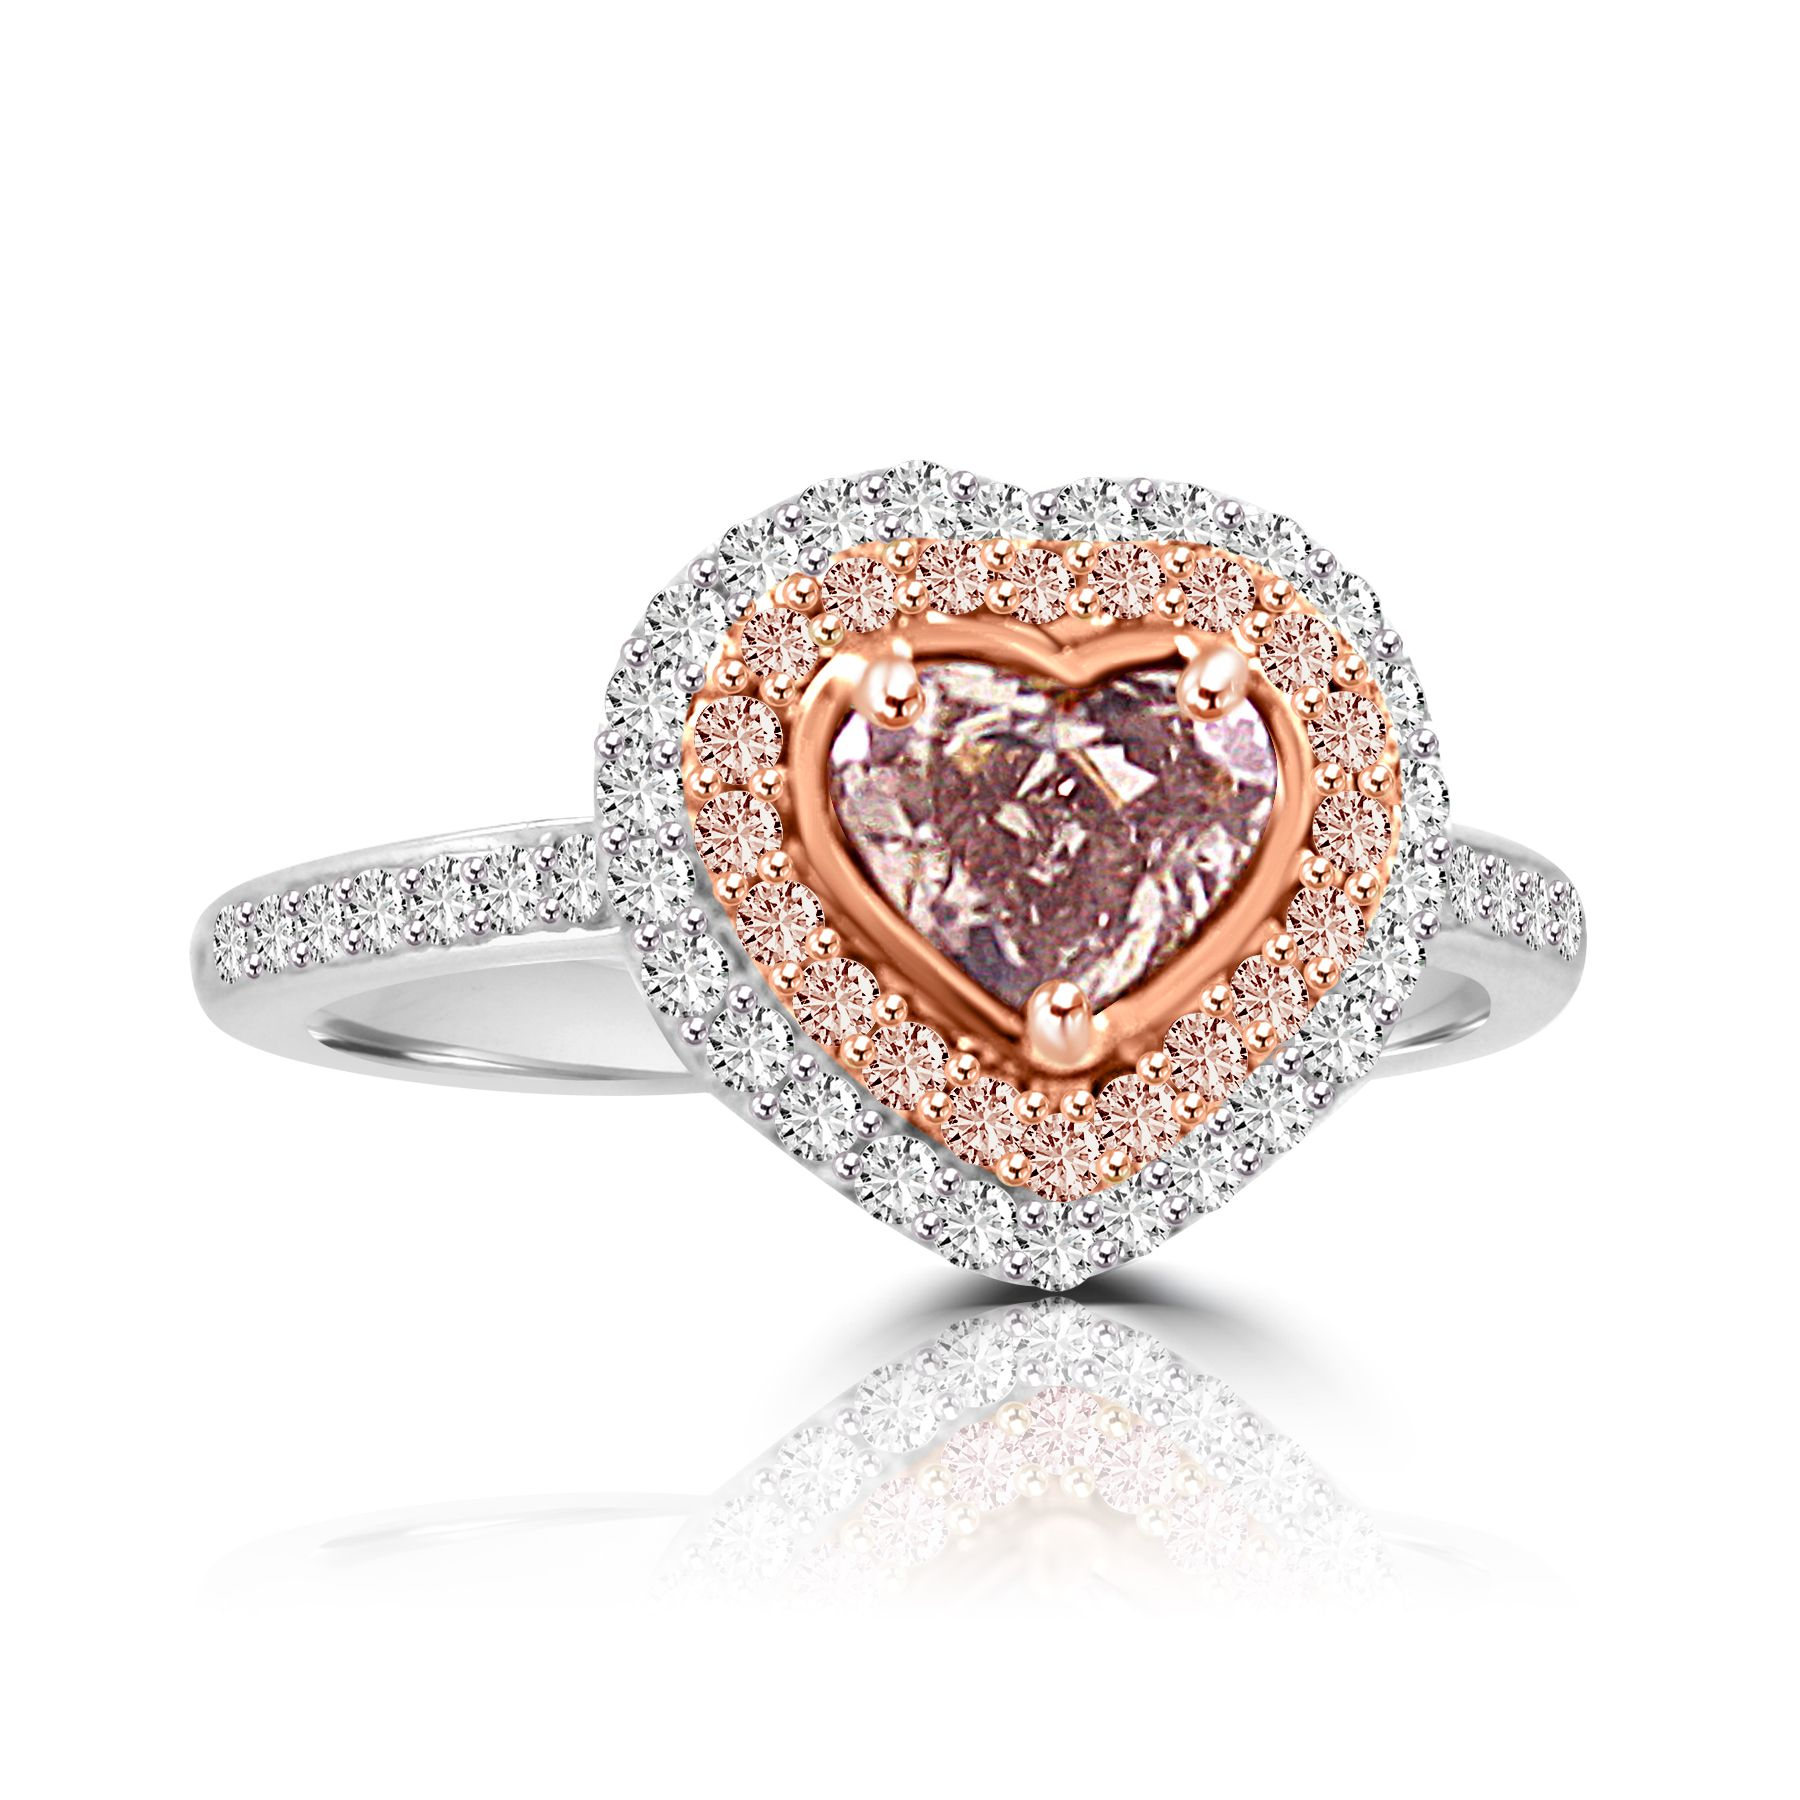 Colorstar Fancy Pink Diamond Ring